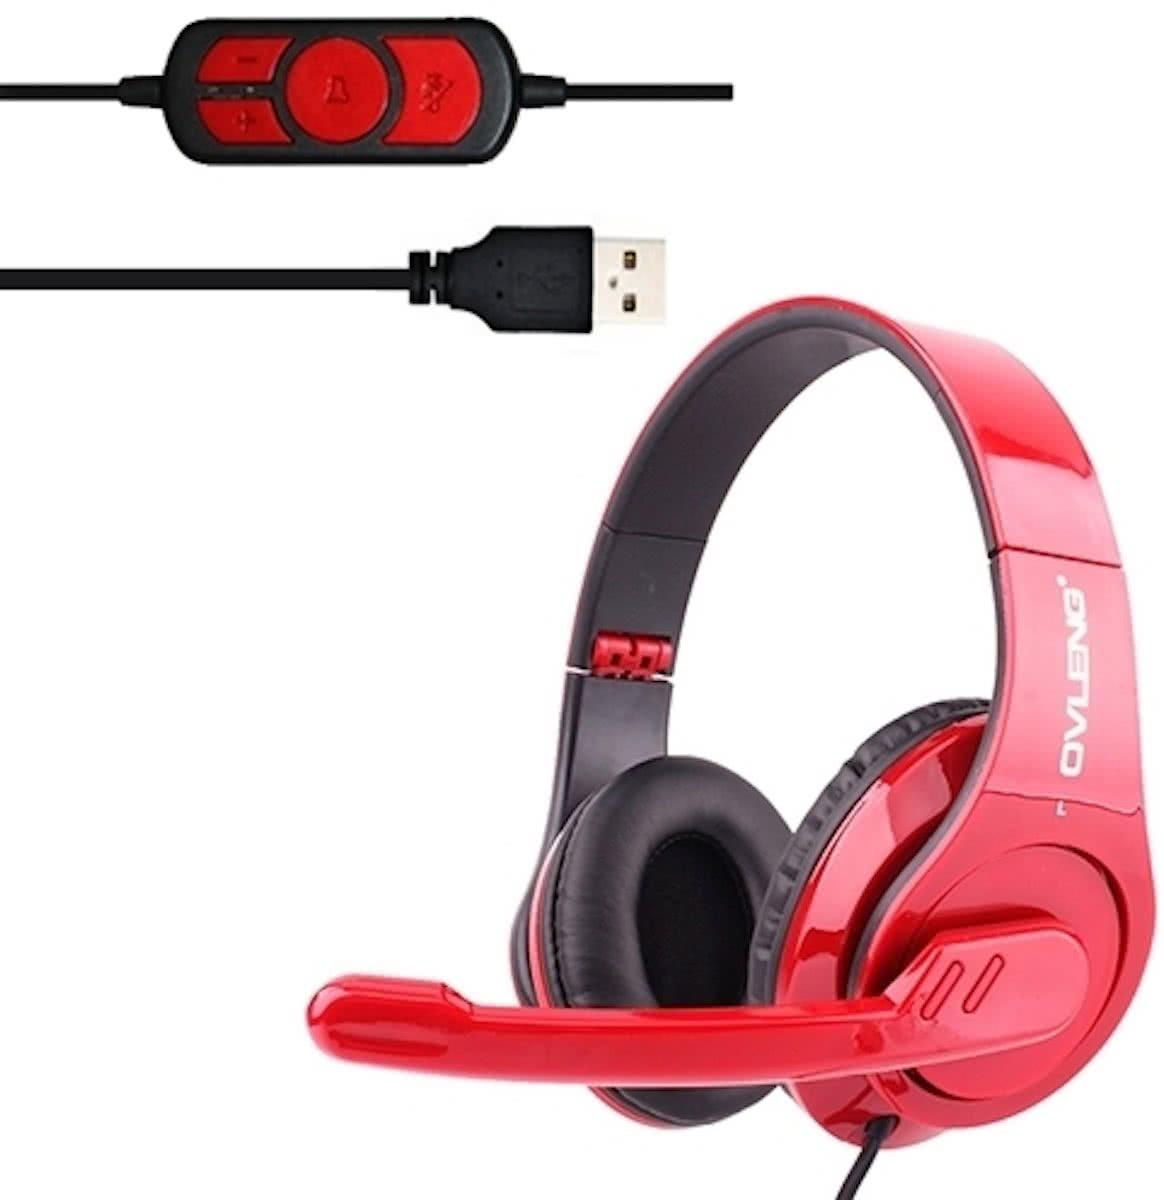 OVLENG Q8 universeel Stereo Headset met Mic & Volume Control Key voor All Audio Devices, Kabel Length: 2m(rood)